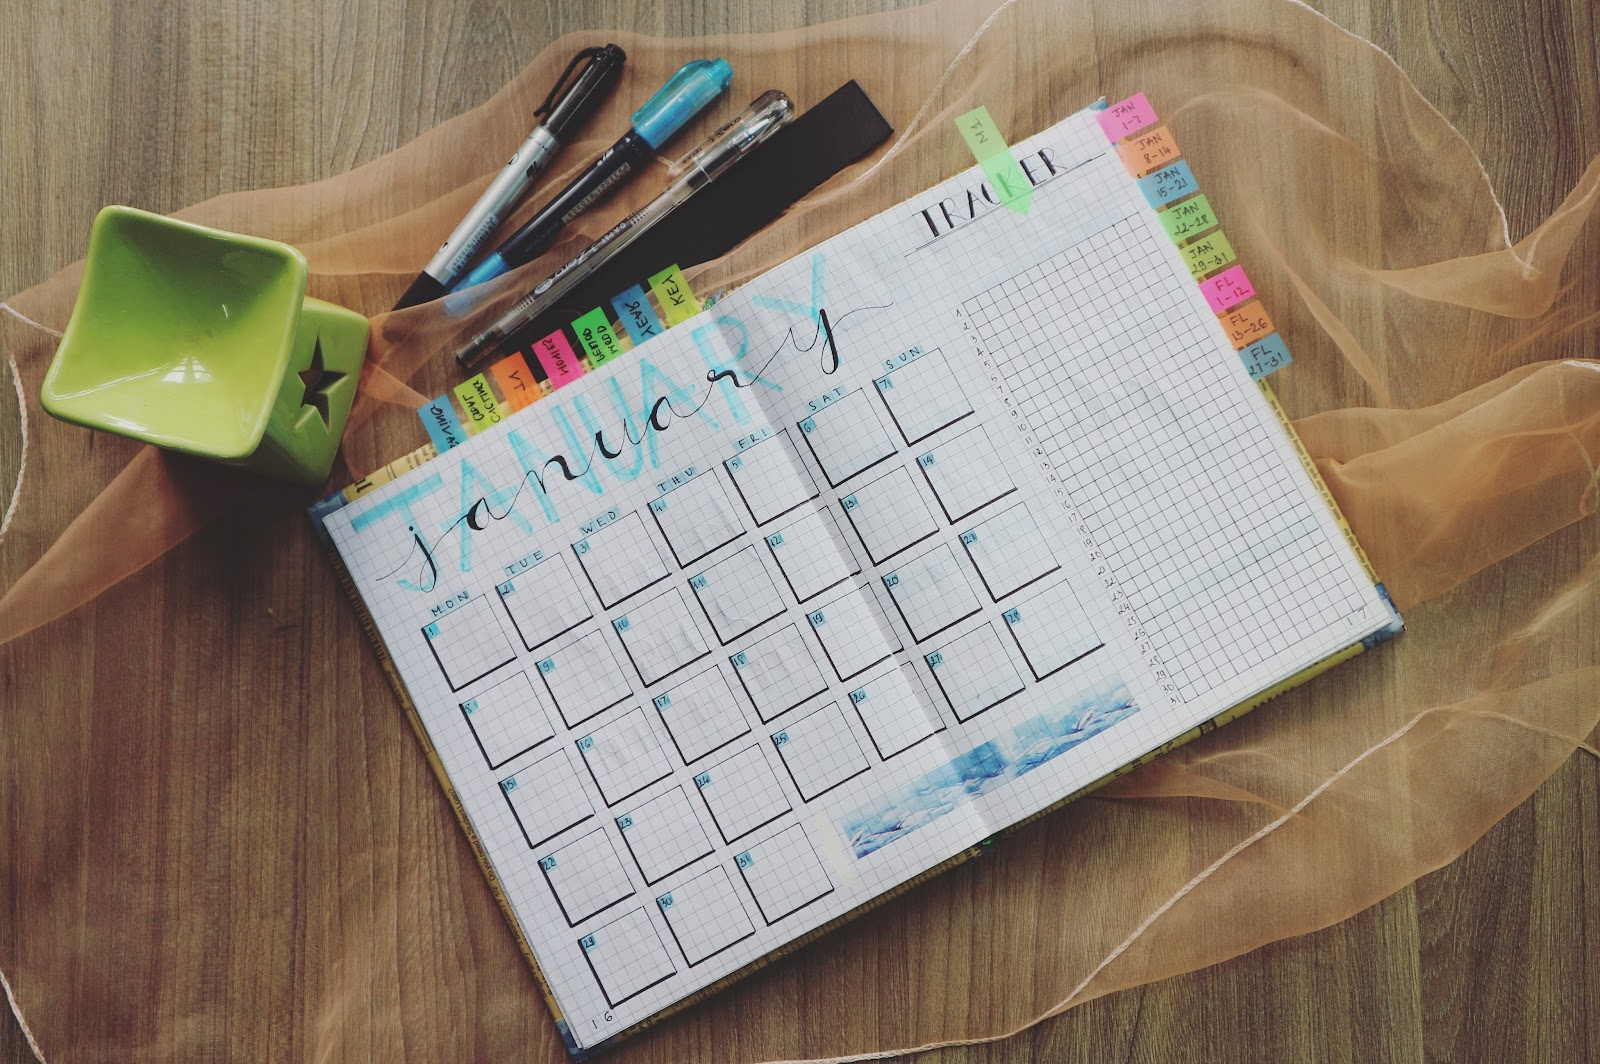 Revision timetable and pens